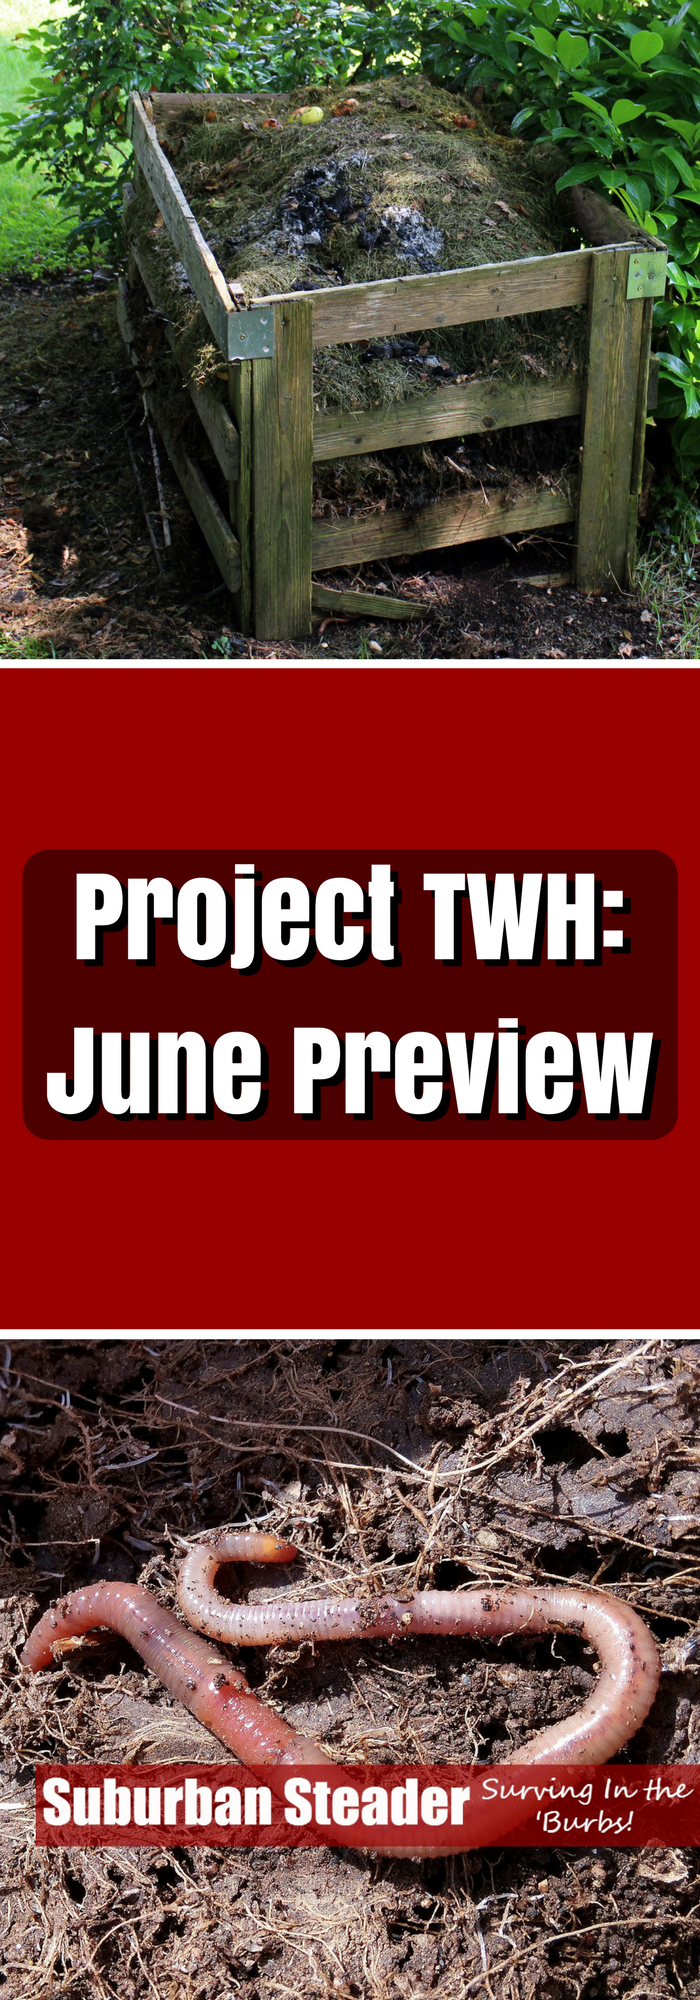 June will be another hectic & eclectic month at the Suburban Steader Homestead. The June Preview of Project TWH describes the topics we'll hit in June.